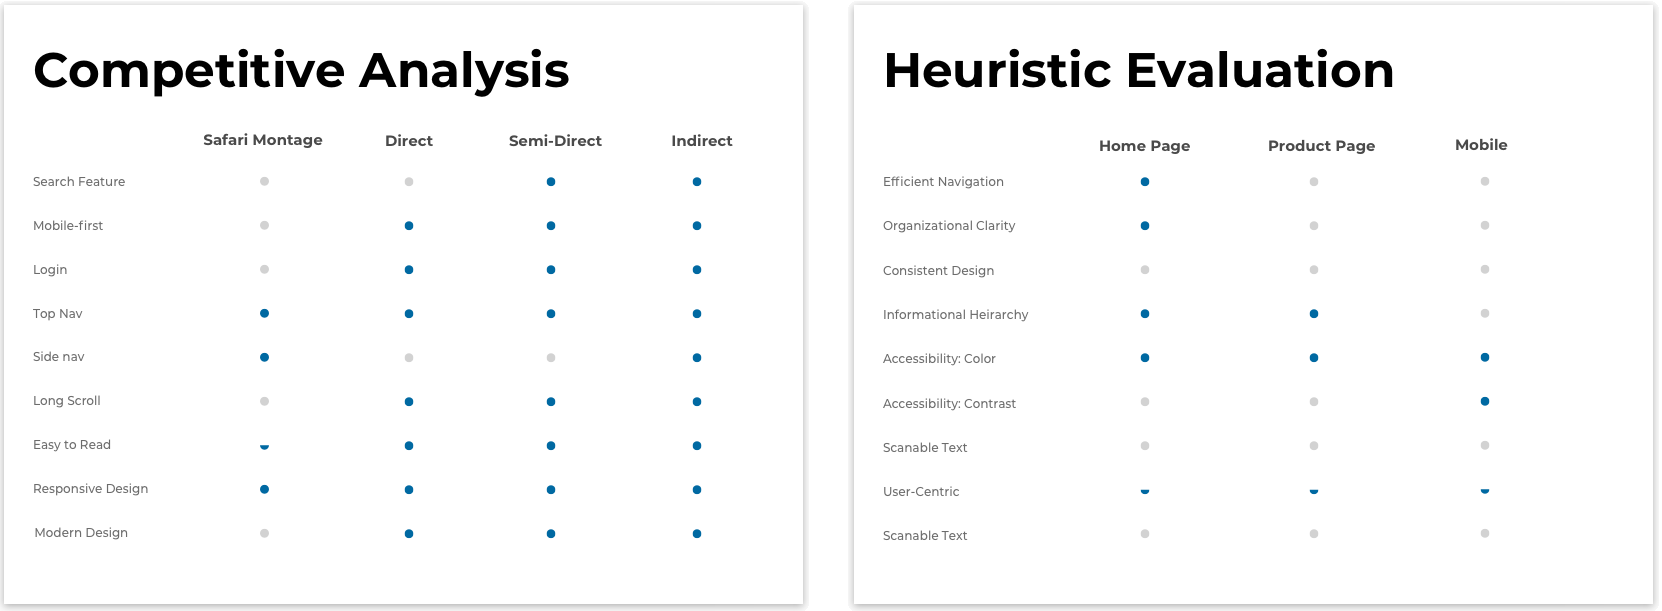 Competitive Analysis and Heuristic Evaluation